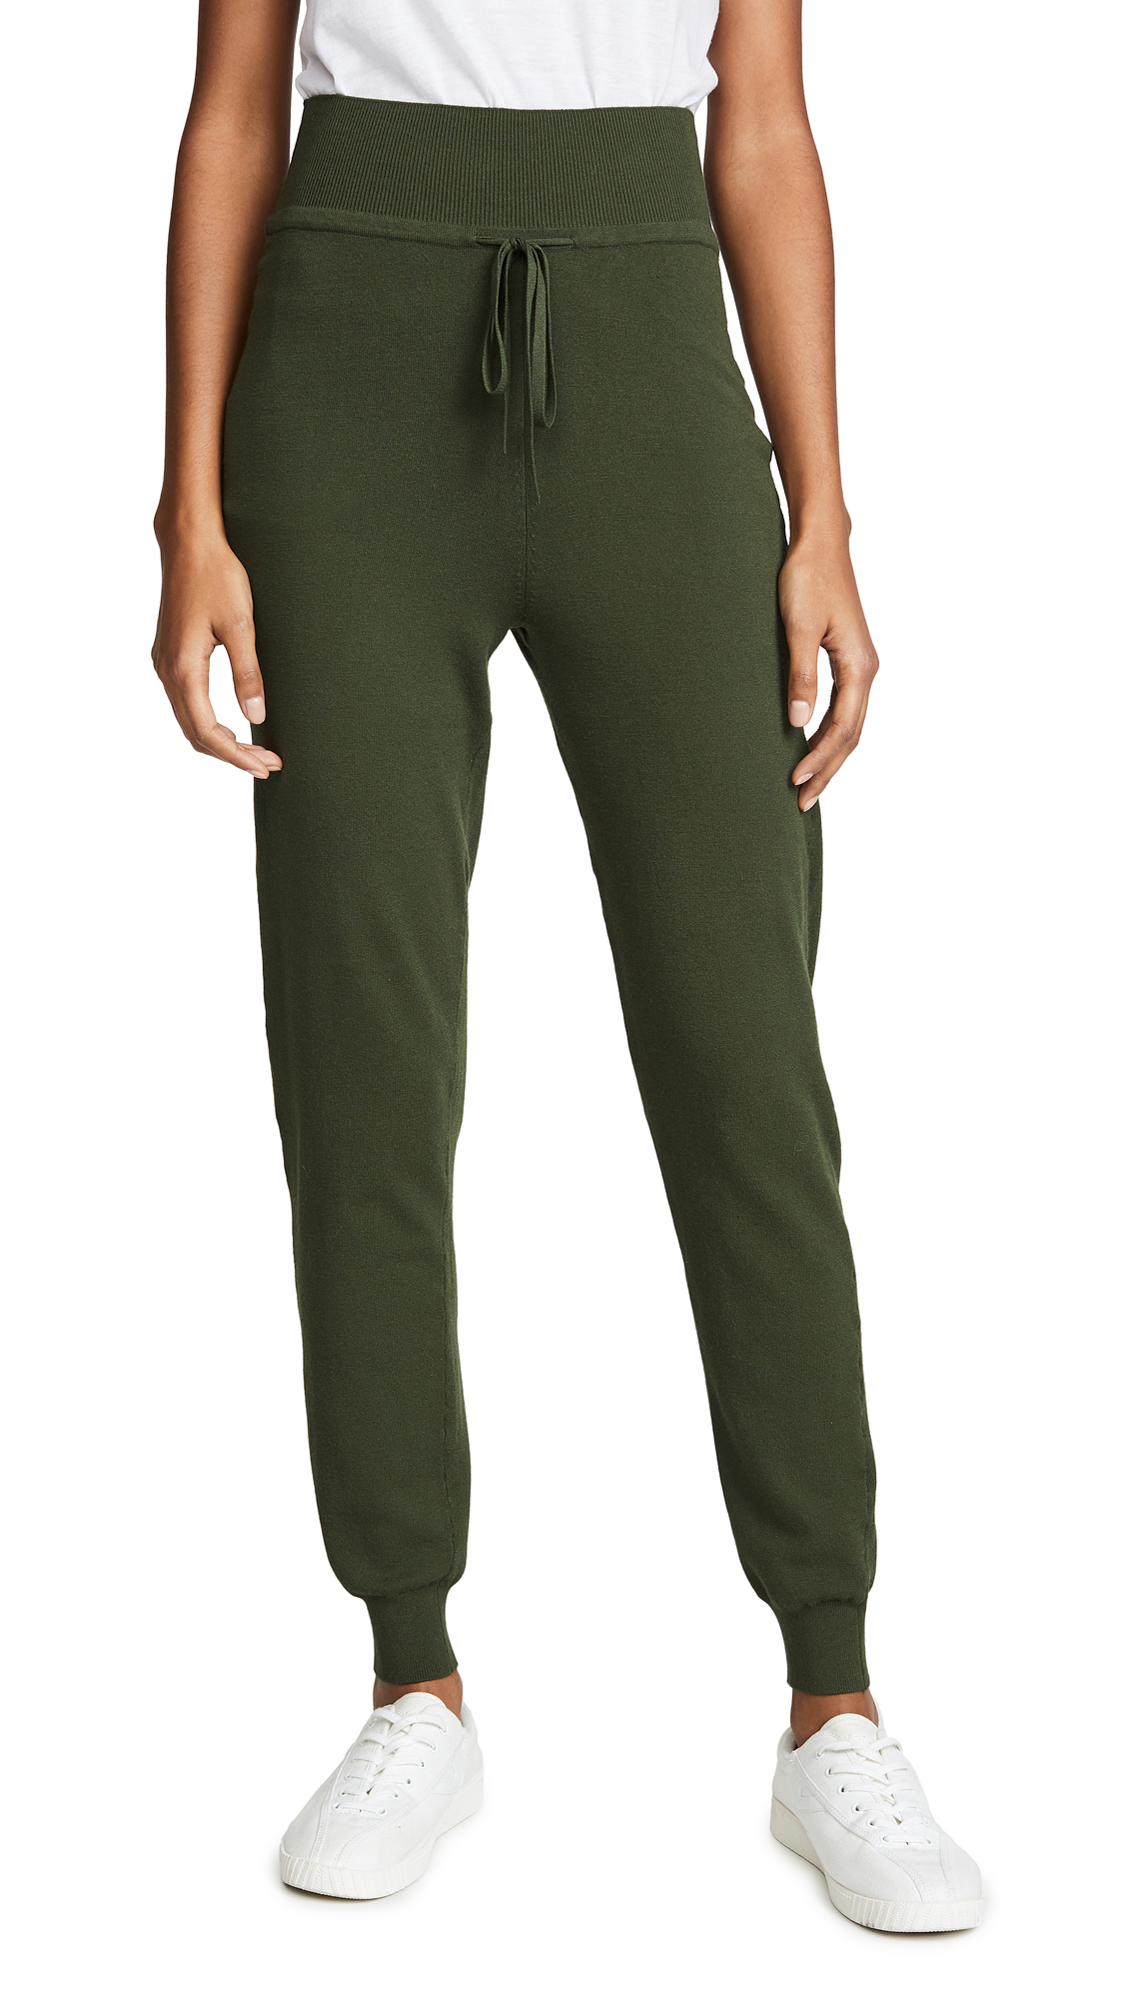 LIVE THE PROCESS Knit High-Waisted Pants in Duffel Bag Green